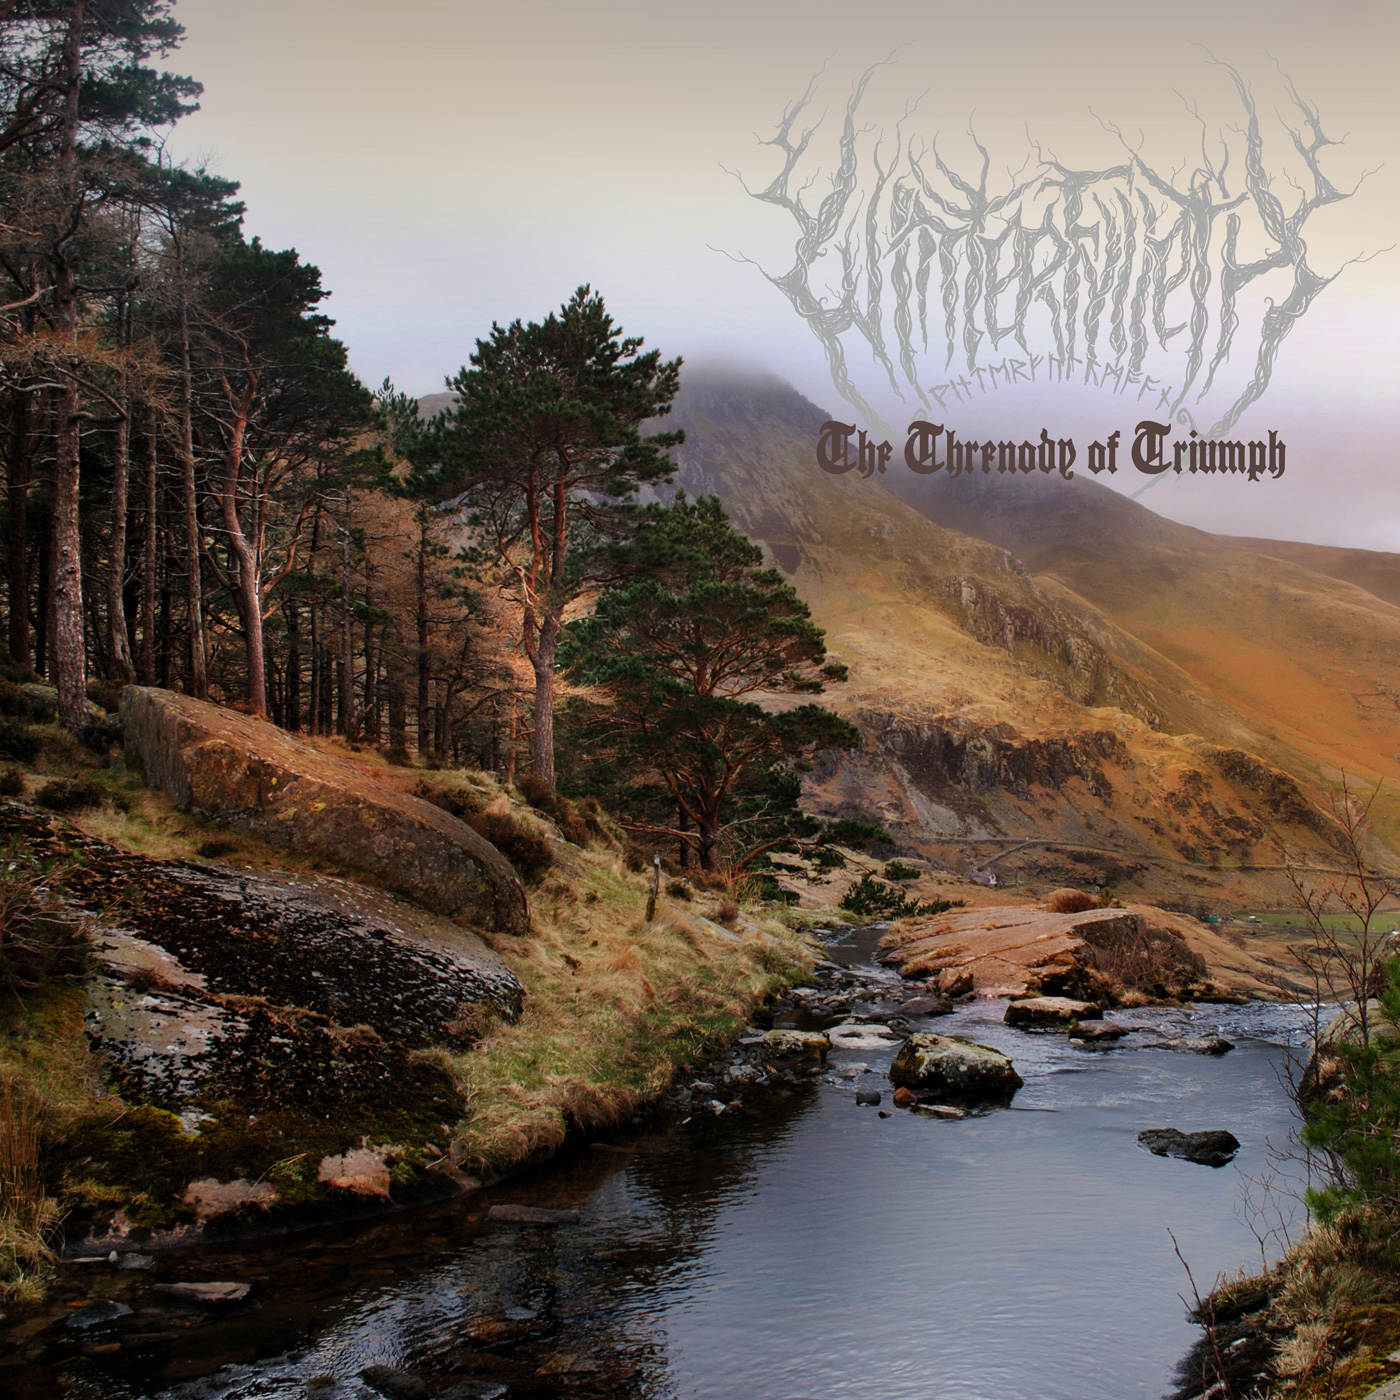 News Added Aug 08, 2012 Pagan black metal. Submitted By Nii Track list: Added Aug 08, 2012 01. A Thousand Winters 02. The Swart Raven 03. Aefterield Freon 04. A Memorial 05. The Glorious Plain 06. A Soul Unbound 07. Void Of Light 08. The Fate Of Souls After Death 09. Home Is Behind 10. […]